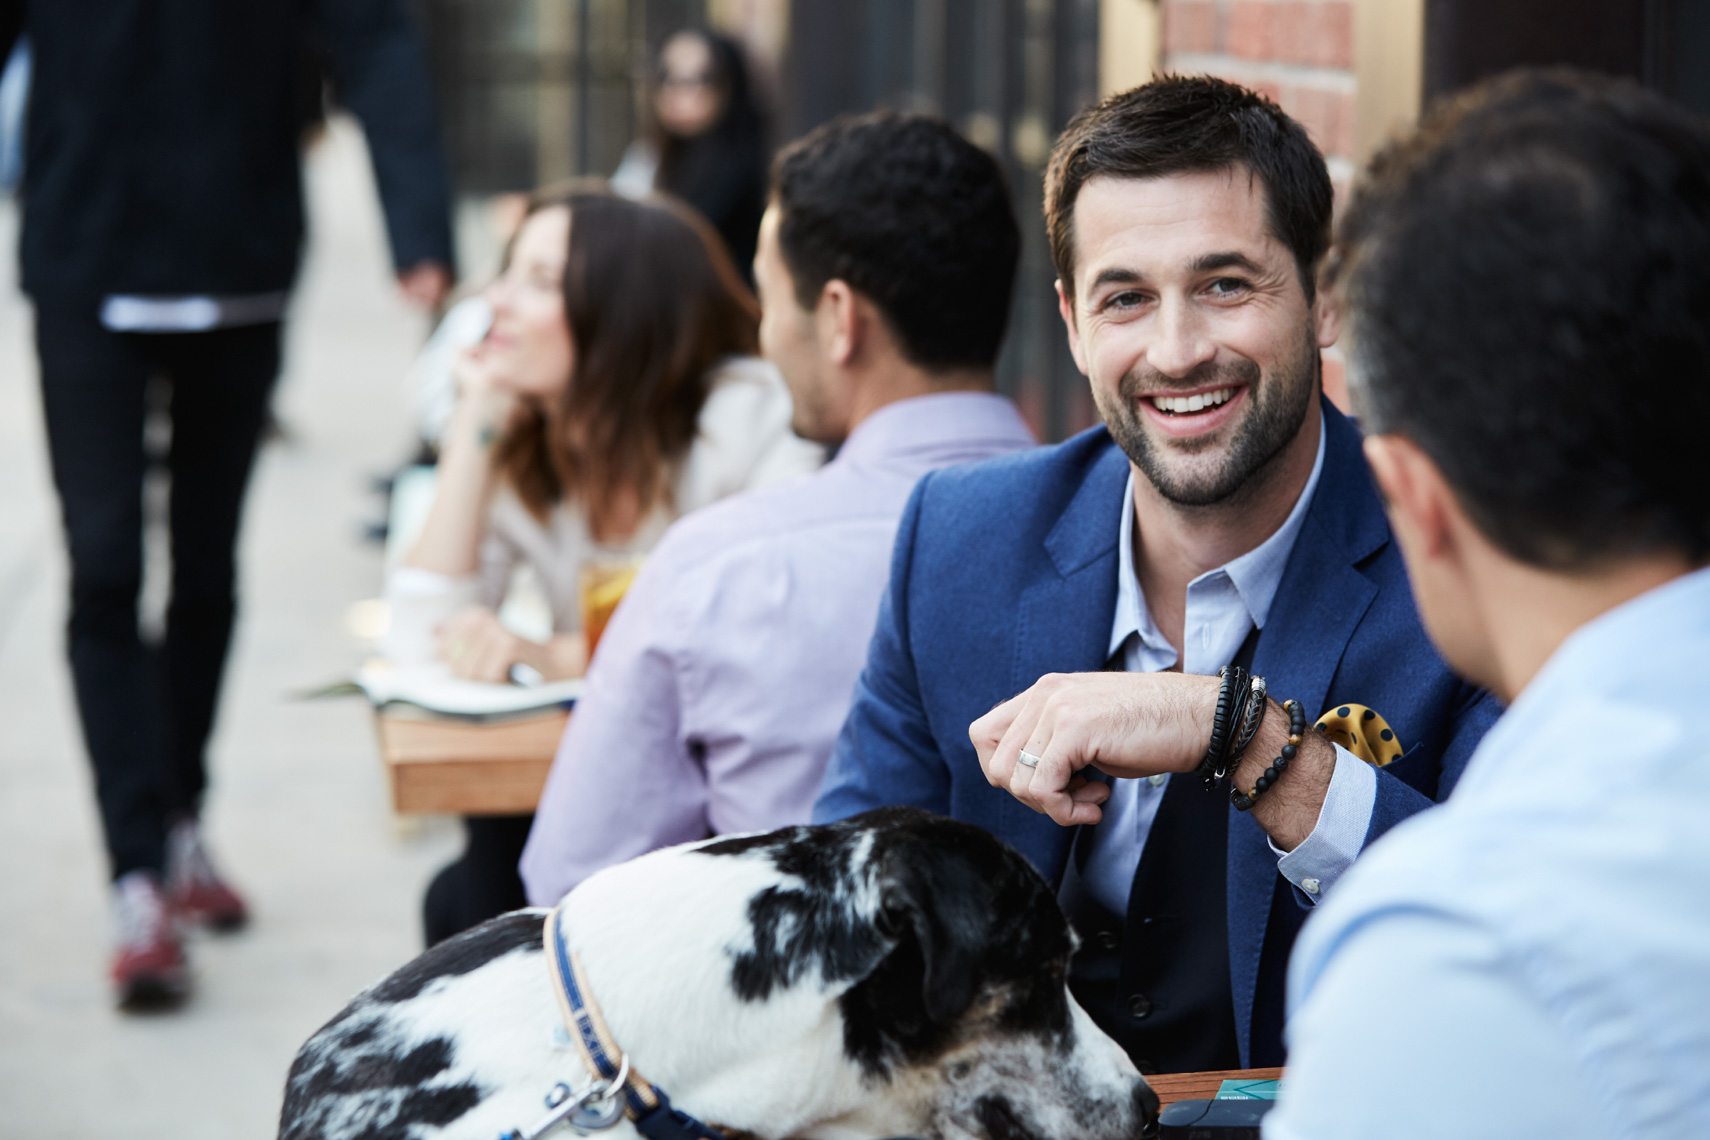 Bearded man in blue suit jacket at outdoor cafe table smiling while dog eats food from the plate on the table San Francisco lifestyle photographer